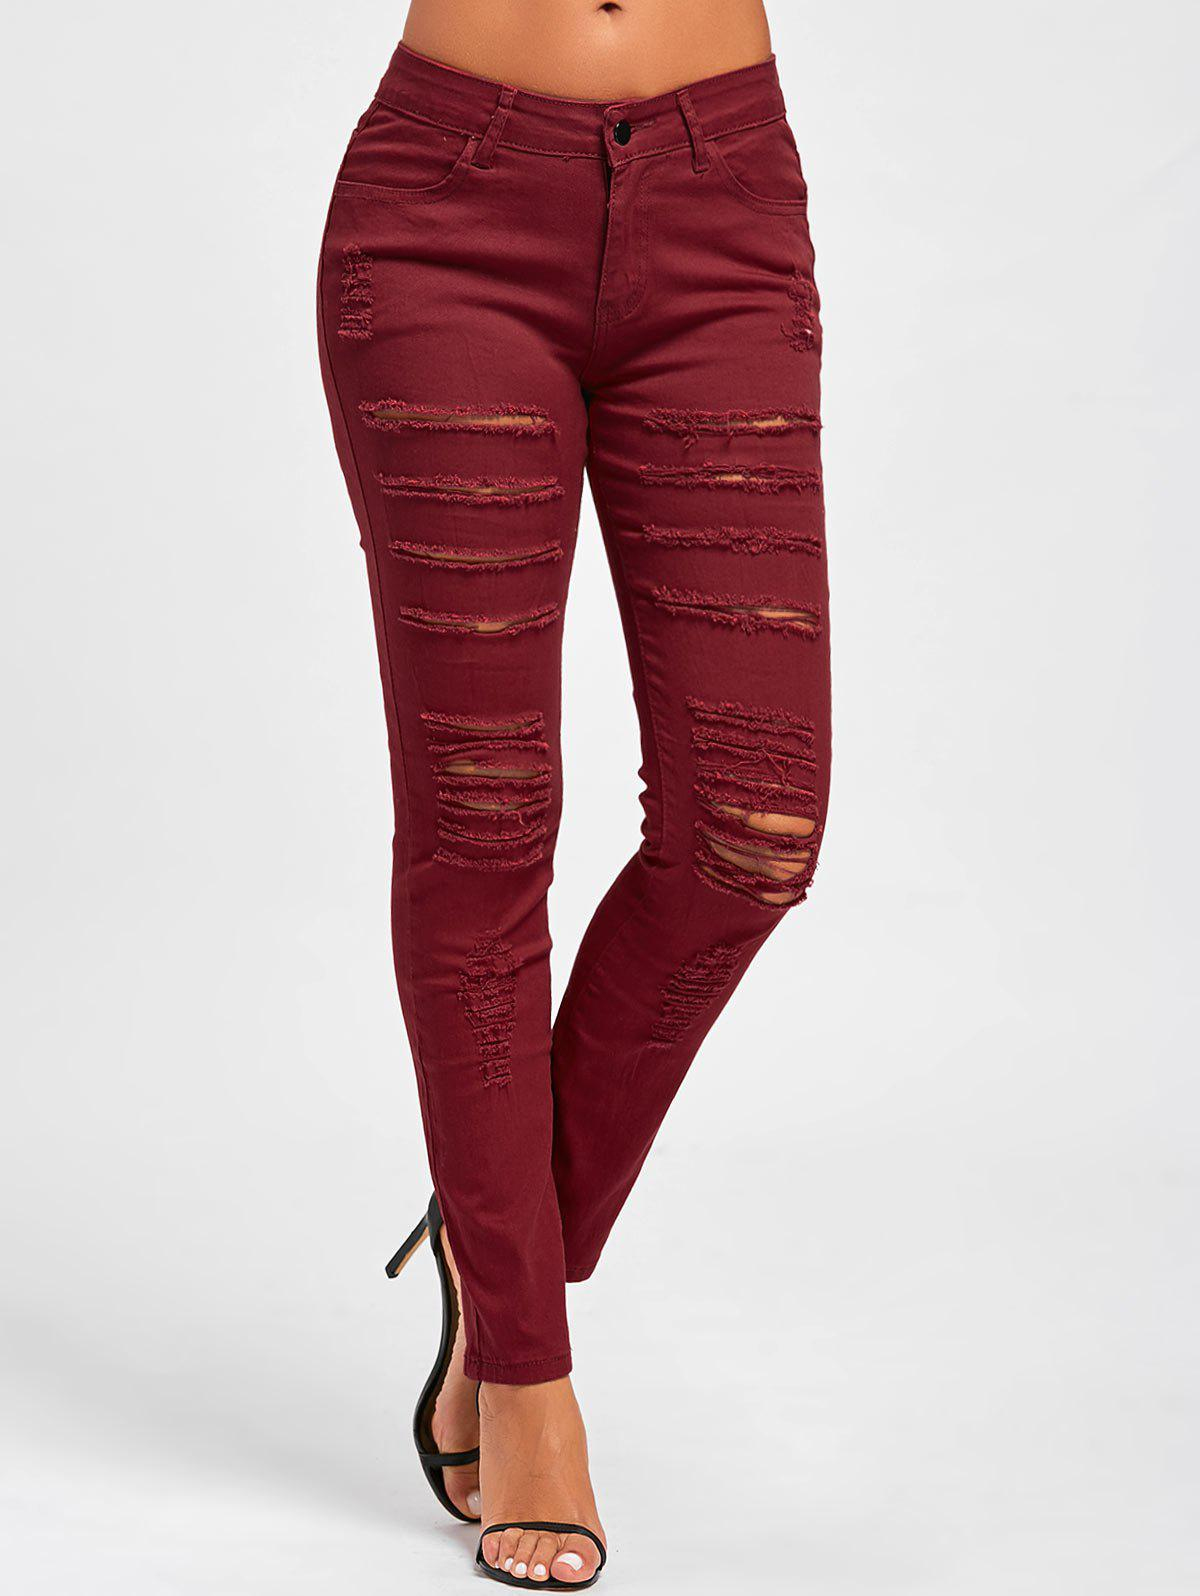 Distressed High Rise Skinny Colored Jeans - RED L